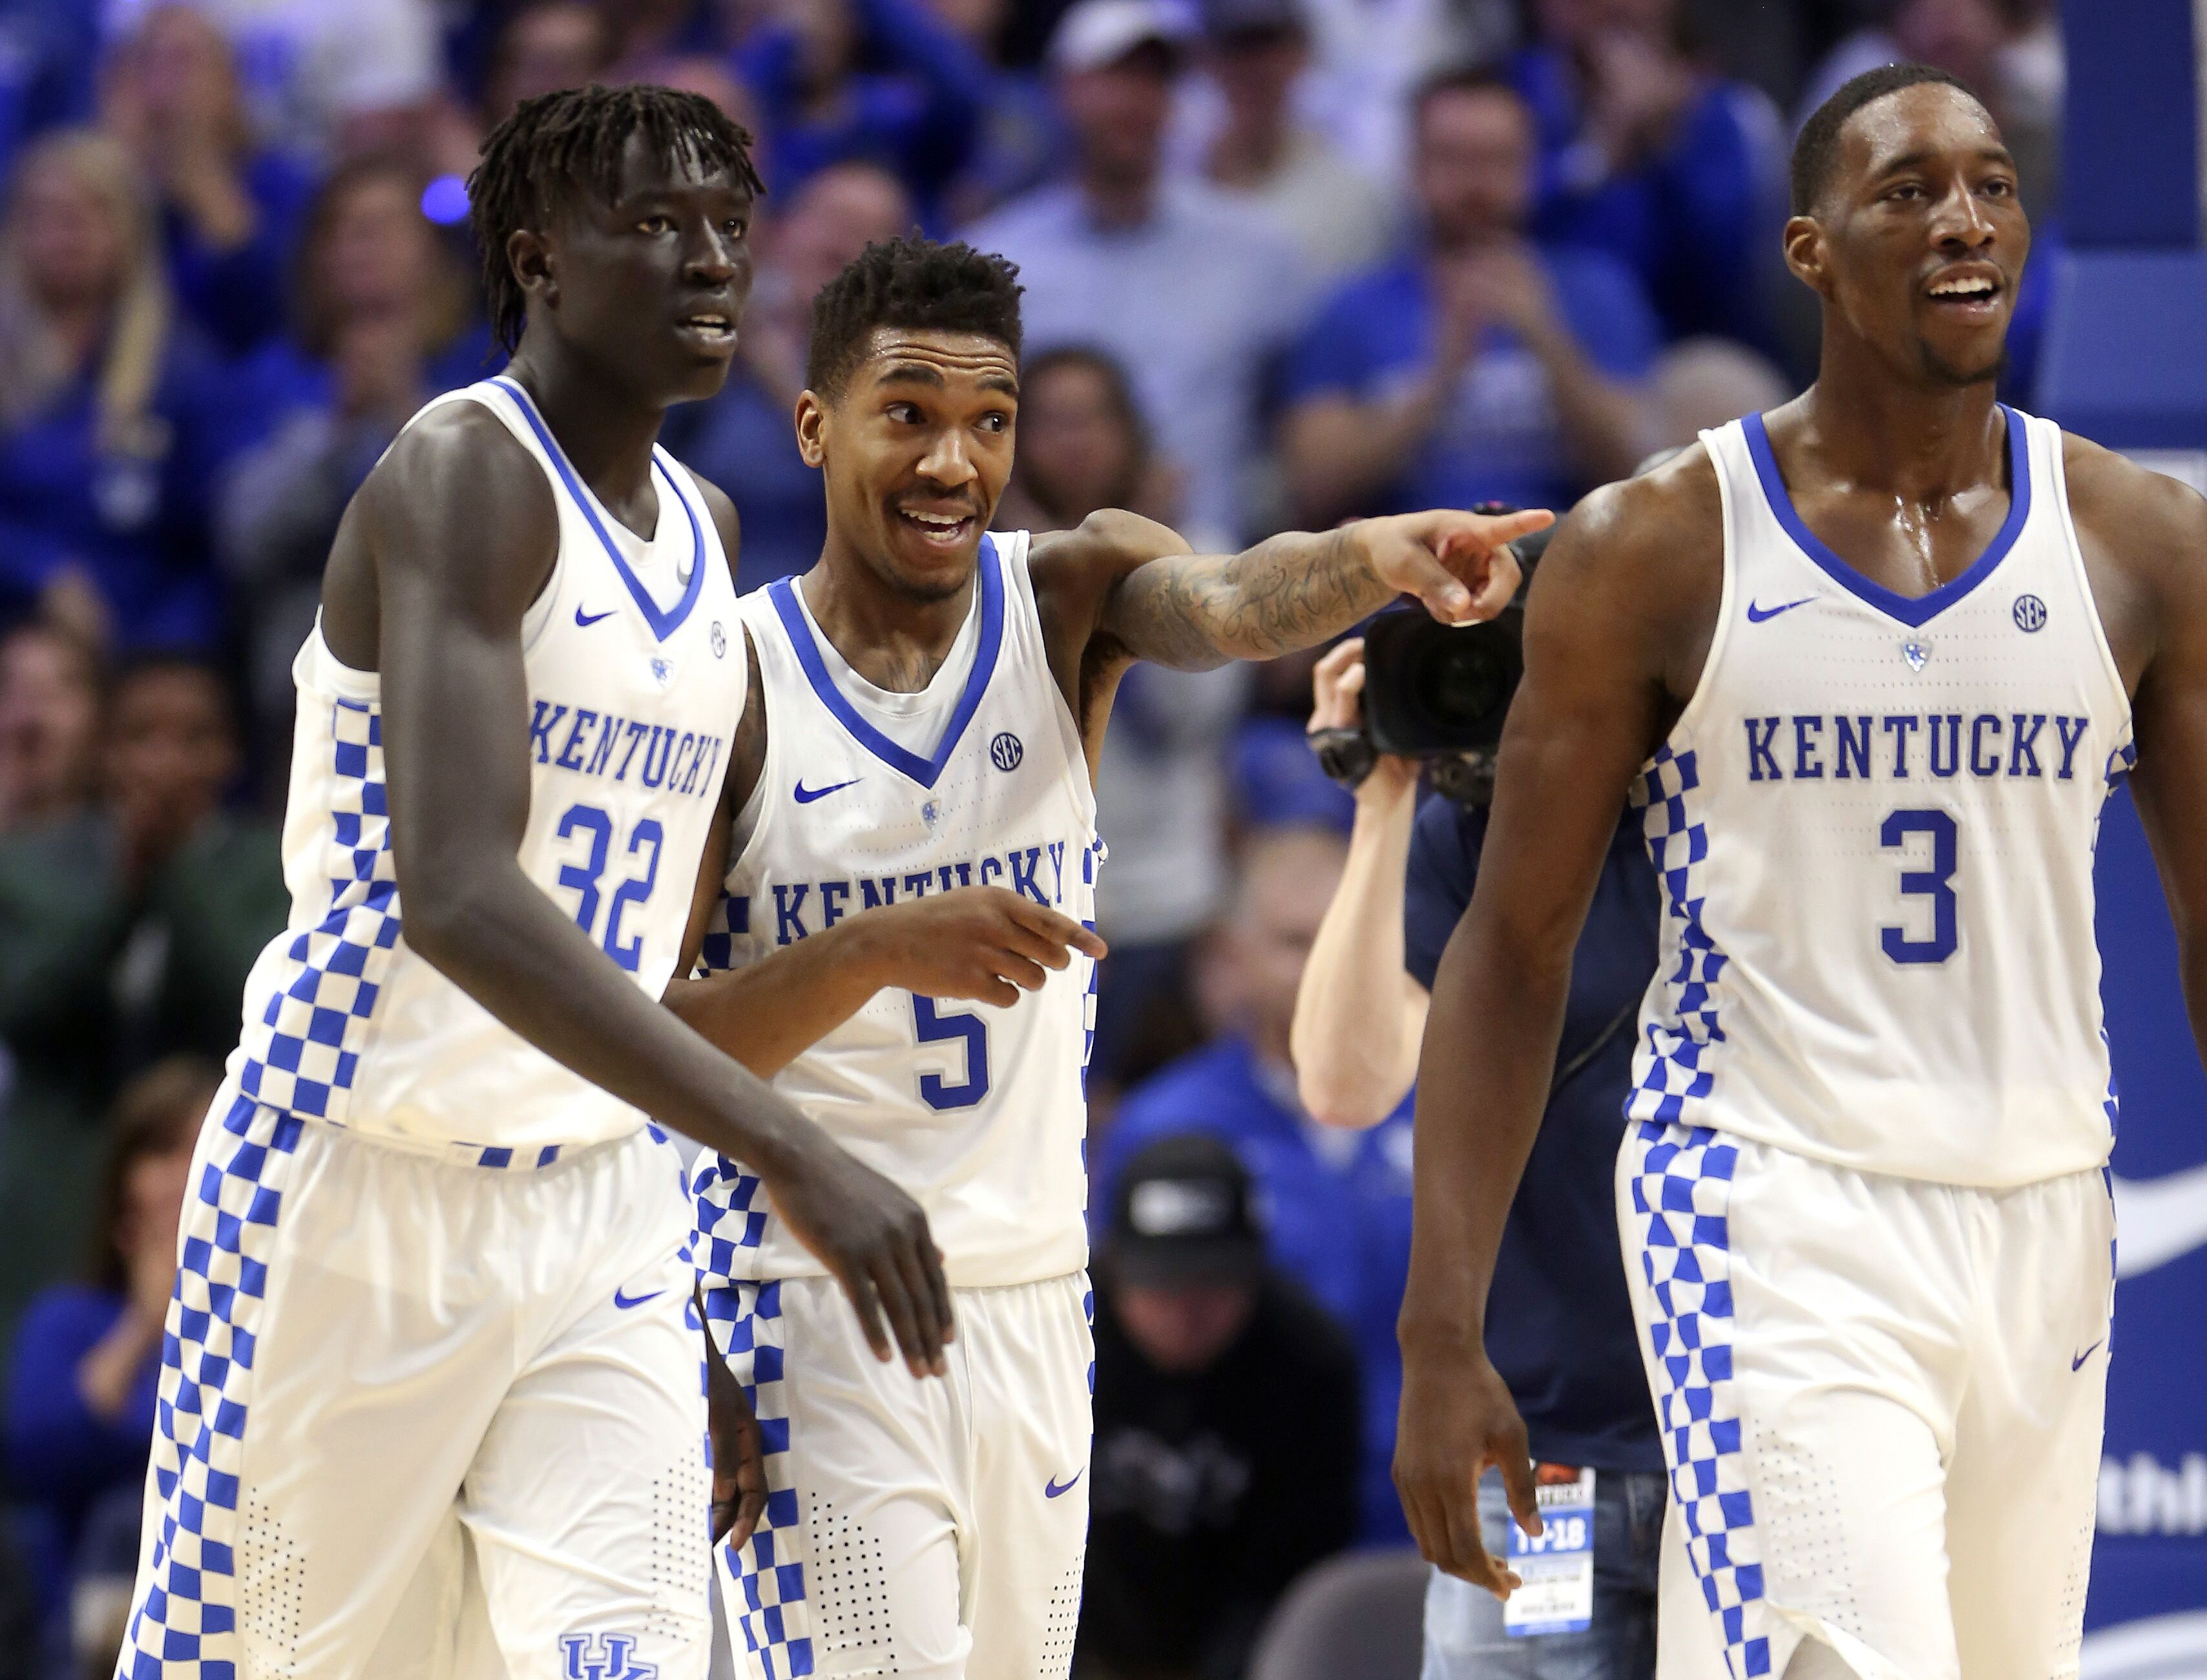 Kentucky Basketball: What The Florida Win Means To The